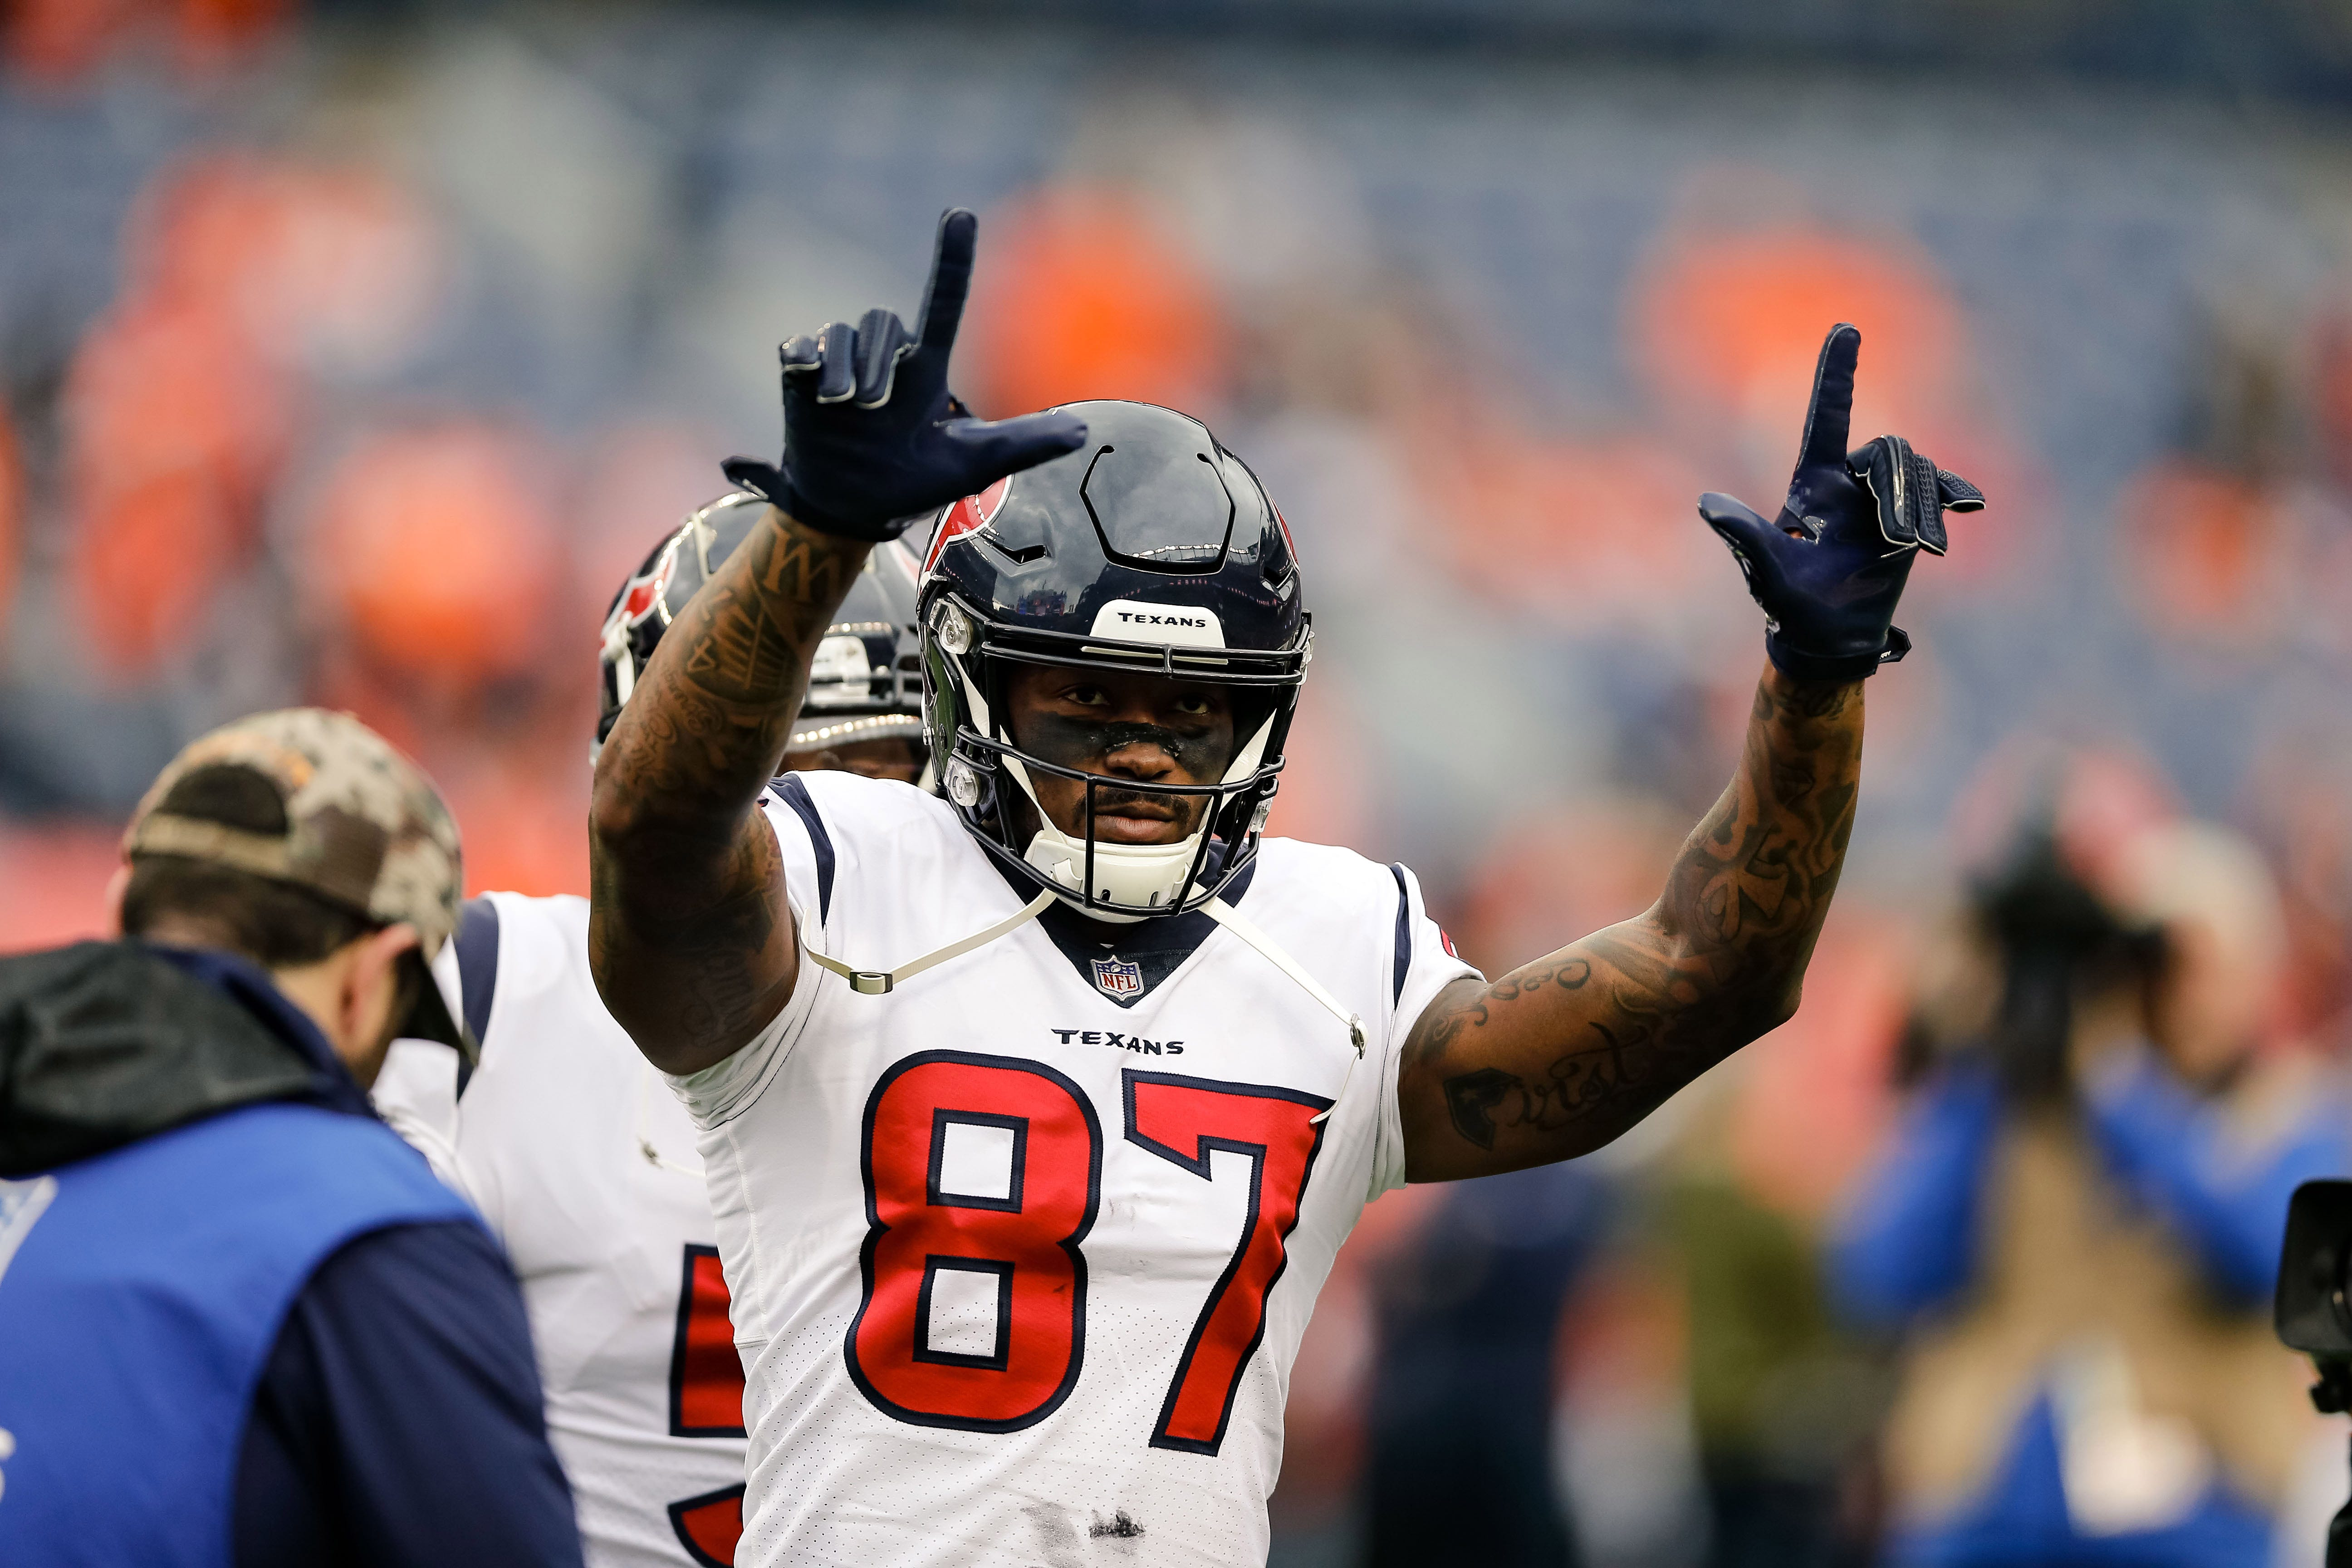 NFL wide receiver Demaryius Thomas arrested on vehicular assault charge